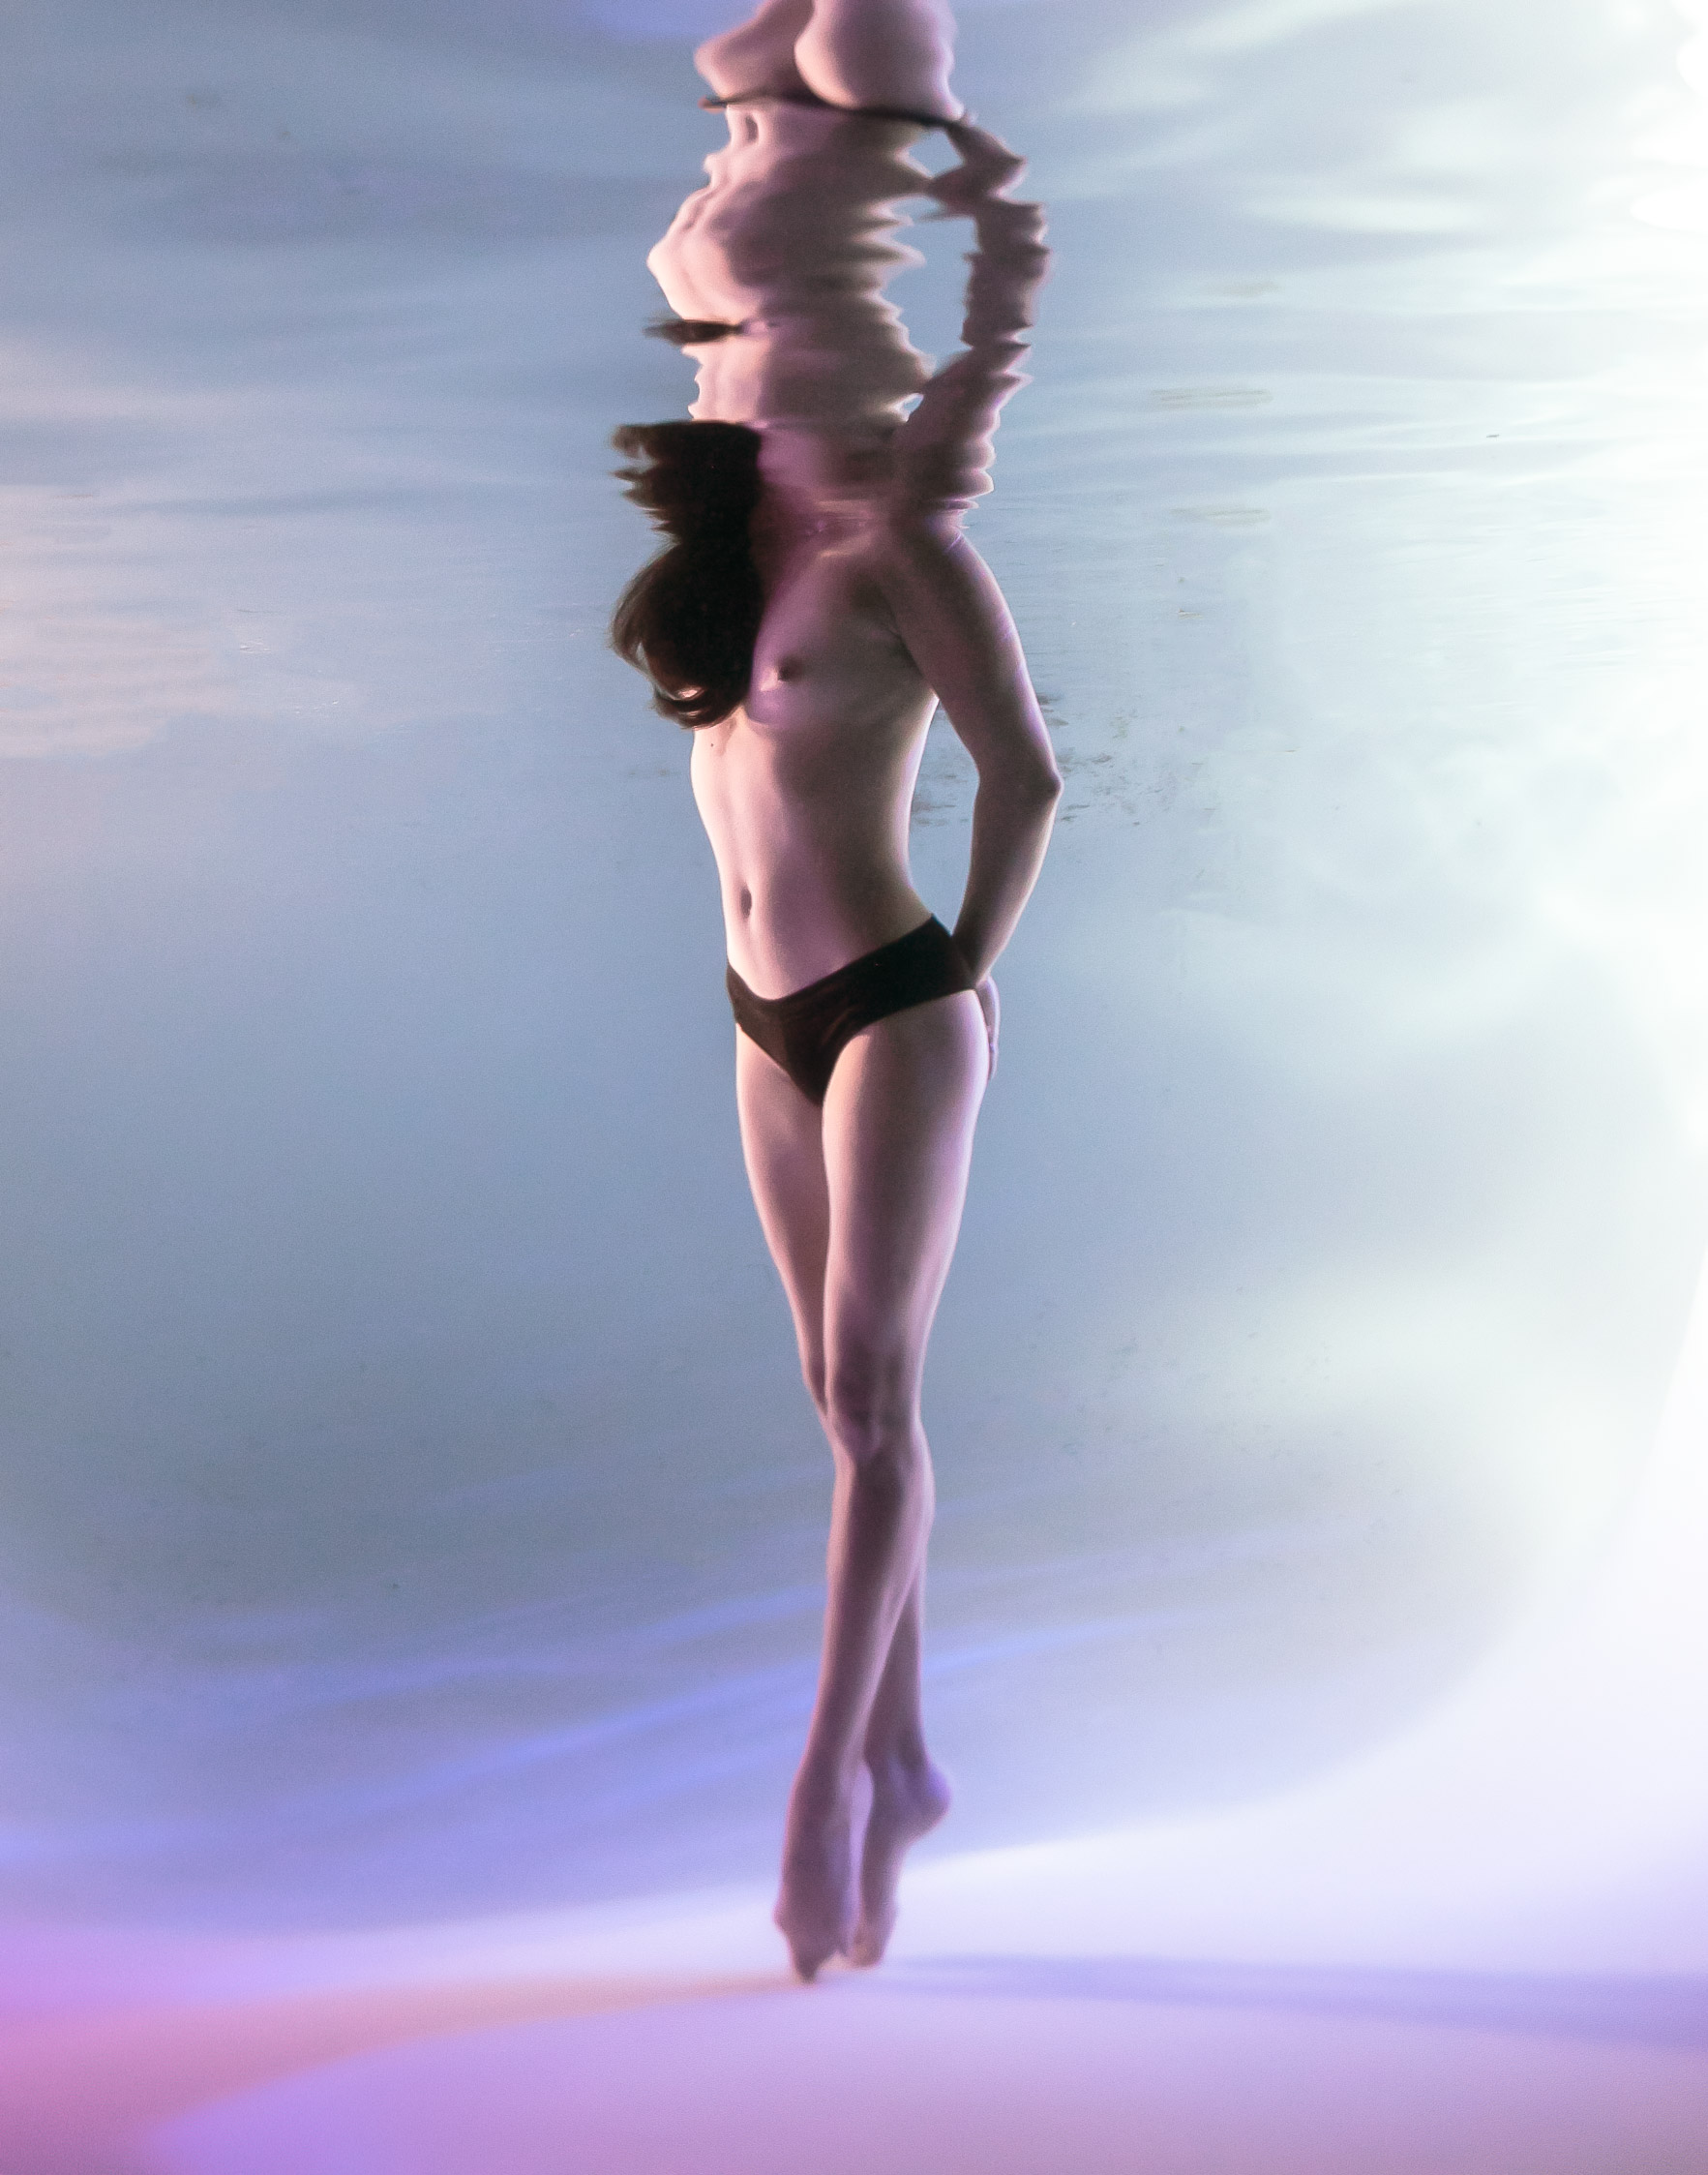 Topless beauty underwater fine art